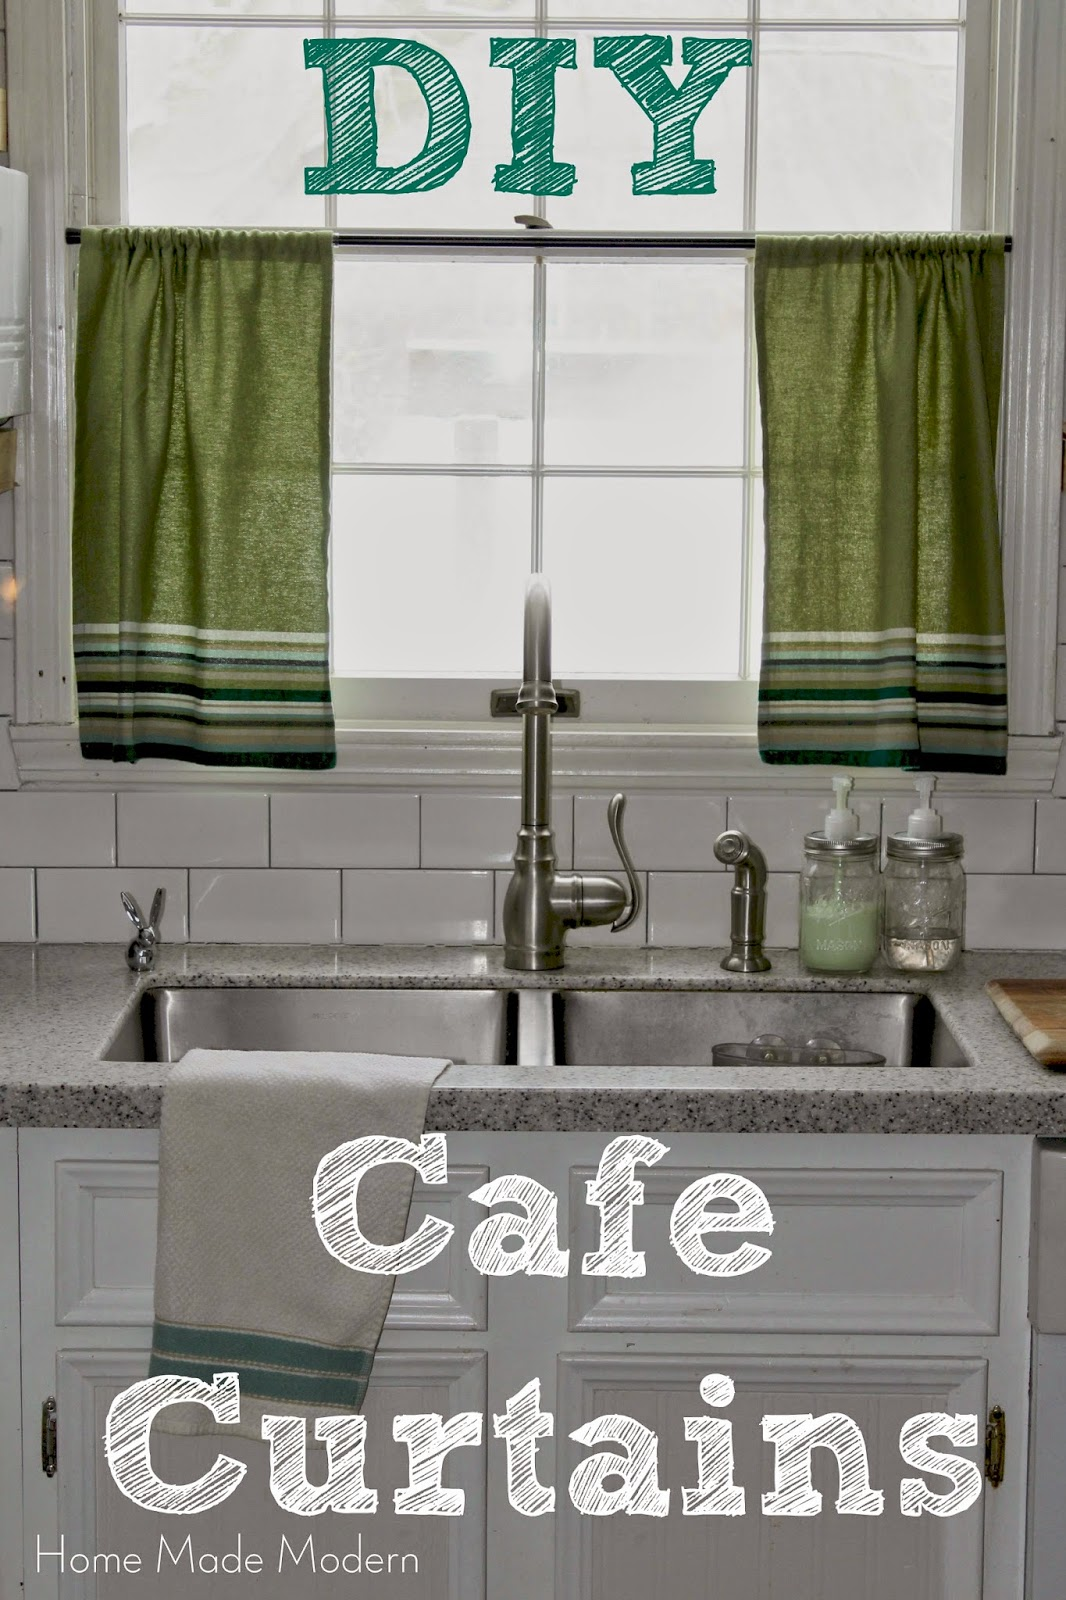 Home Made Modern Cafe Curtains From Kitchen Towels